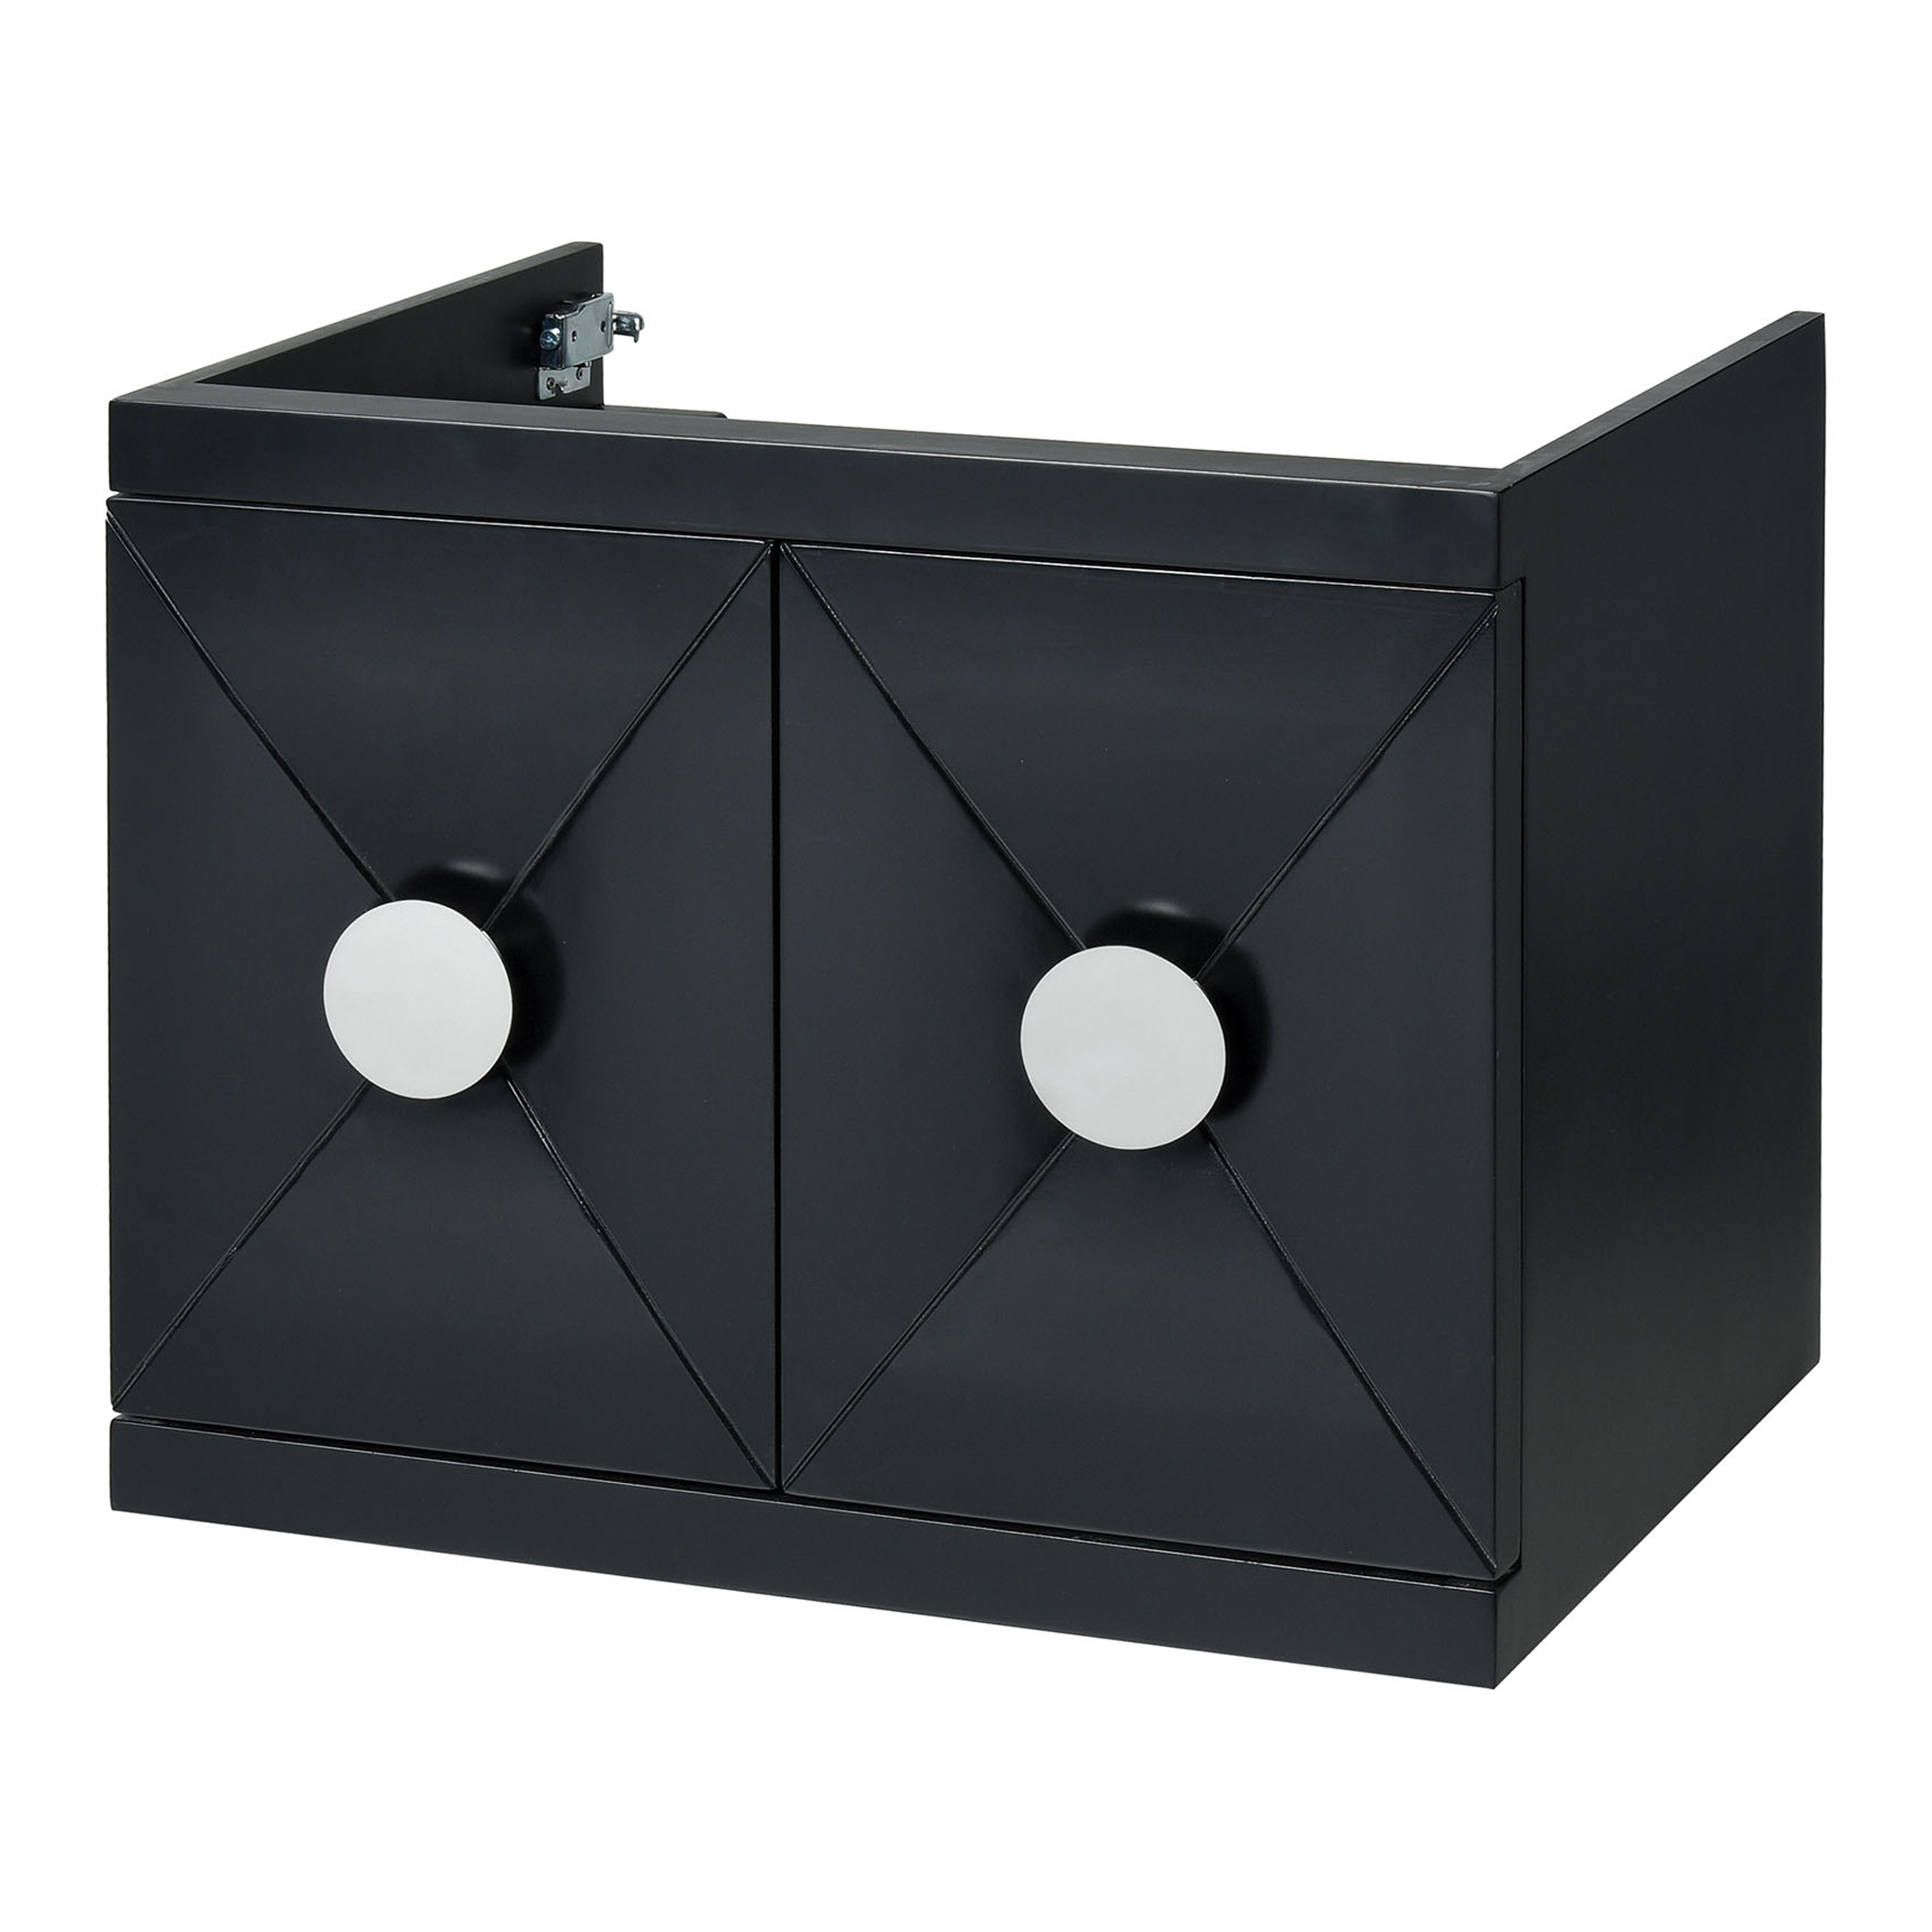 "23.6"" Contemporary Bathroom Vanity - Black Finish"